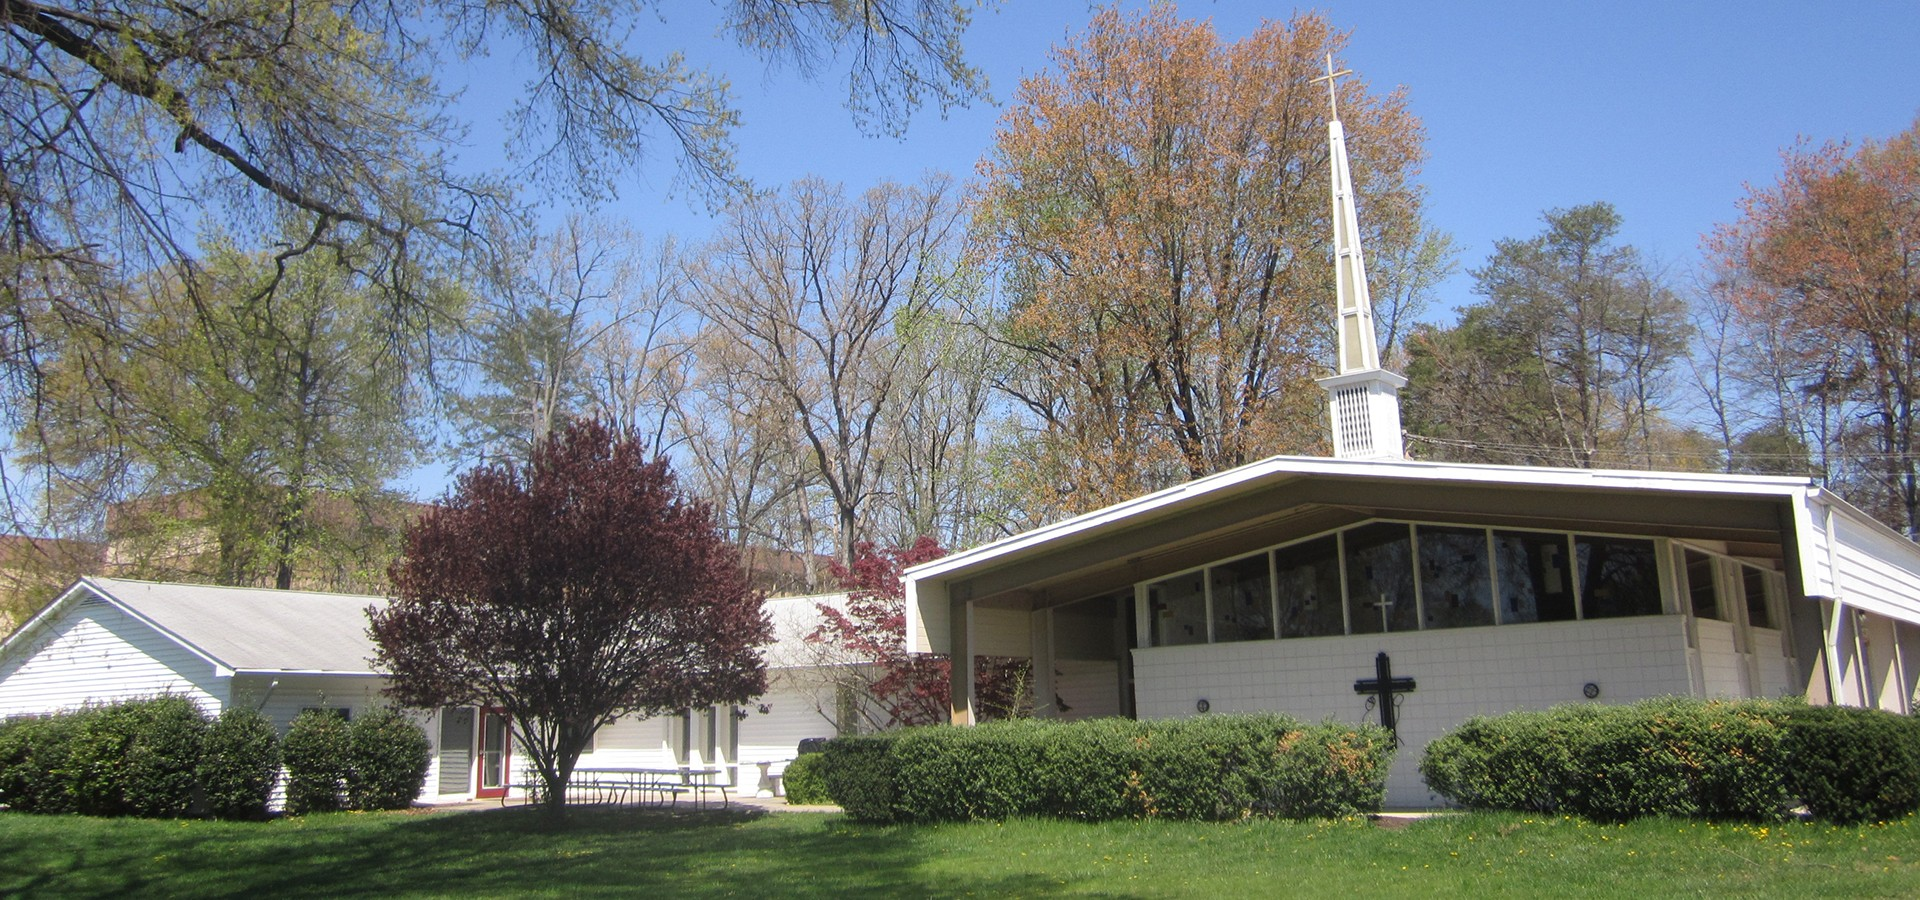 Good Samaritan Lutheran Church